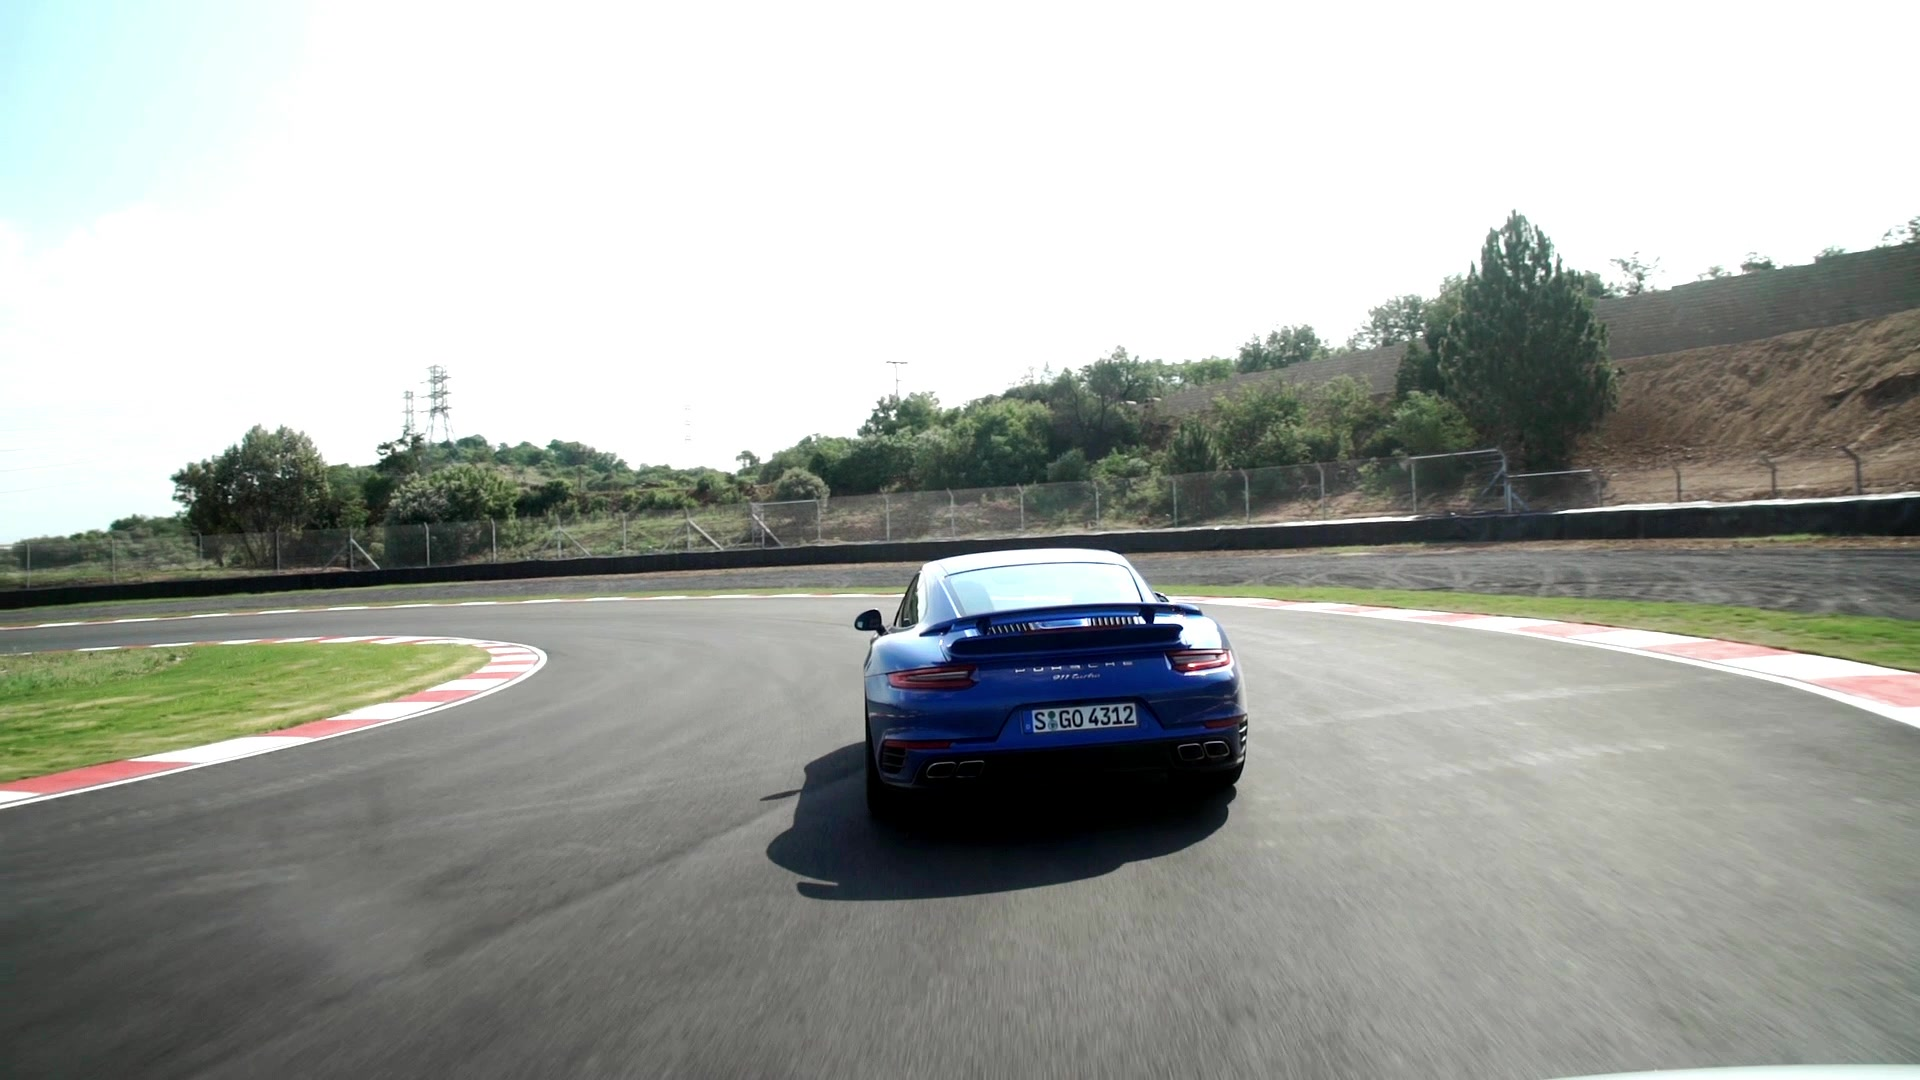 2017 Porsche 911 Turbo Lap of Kyalami Circuit